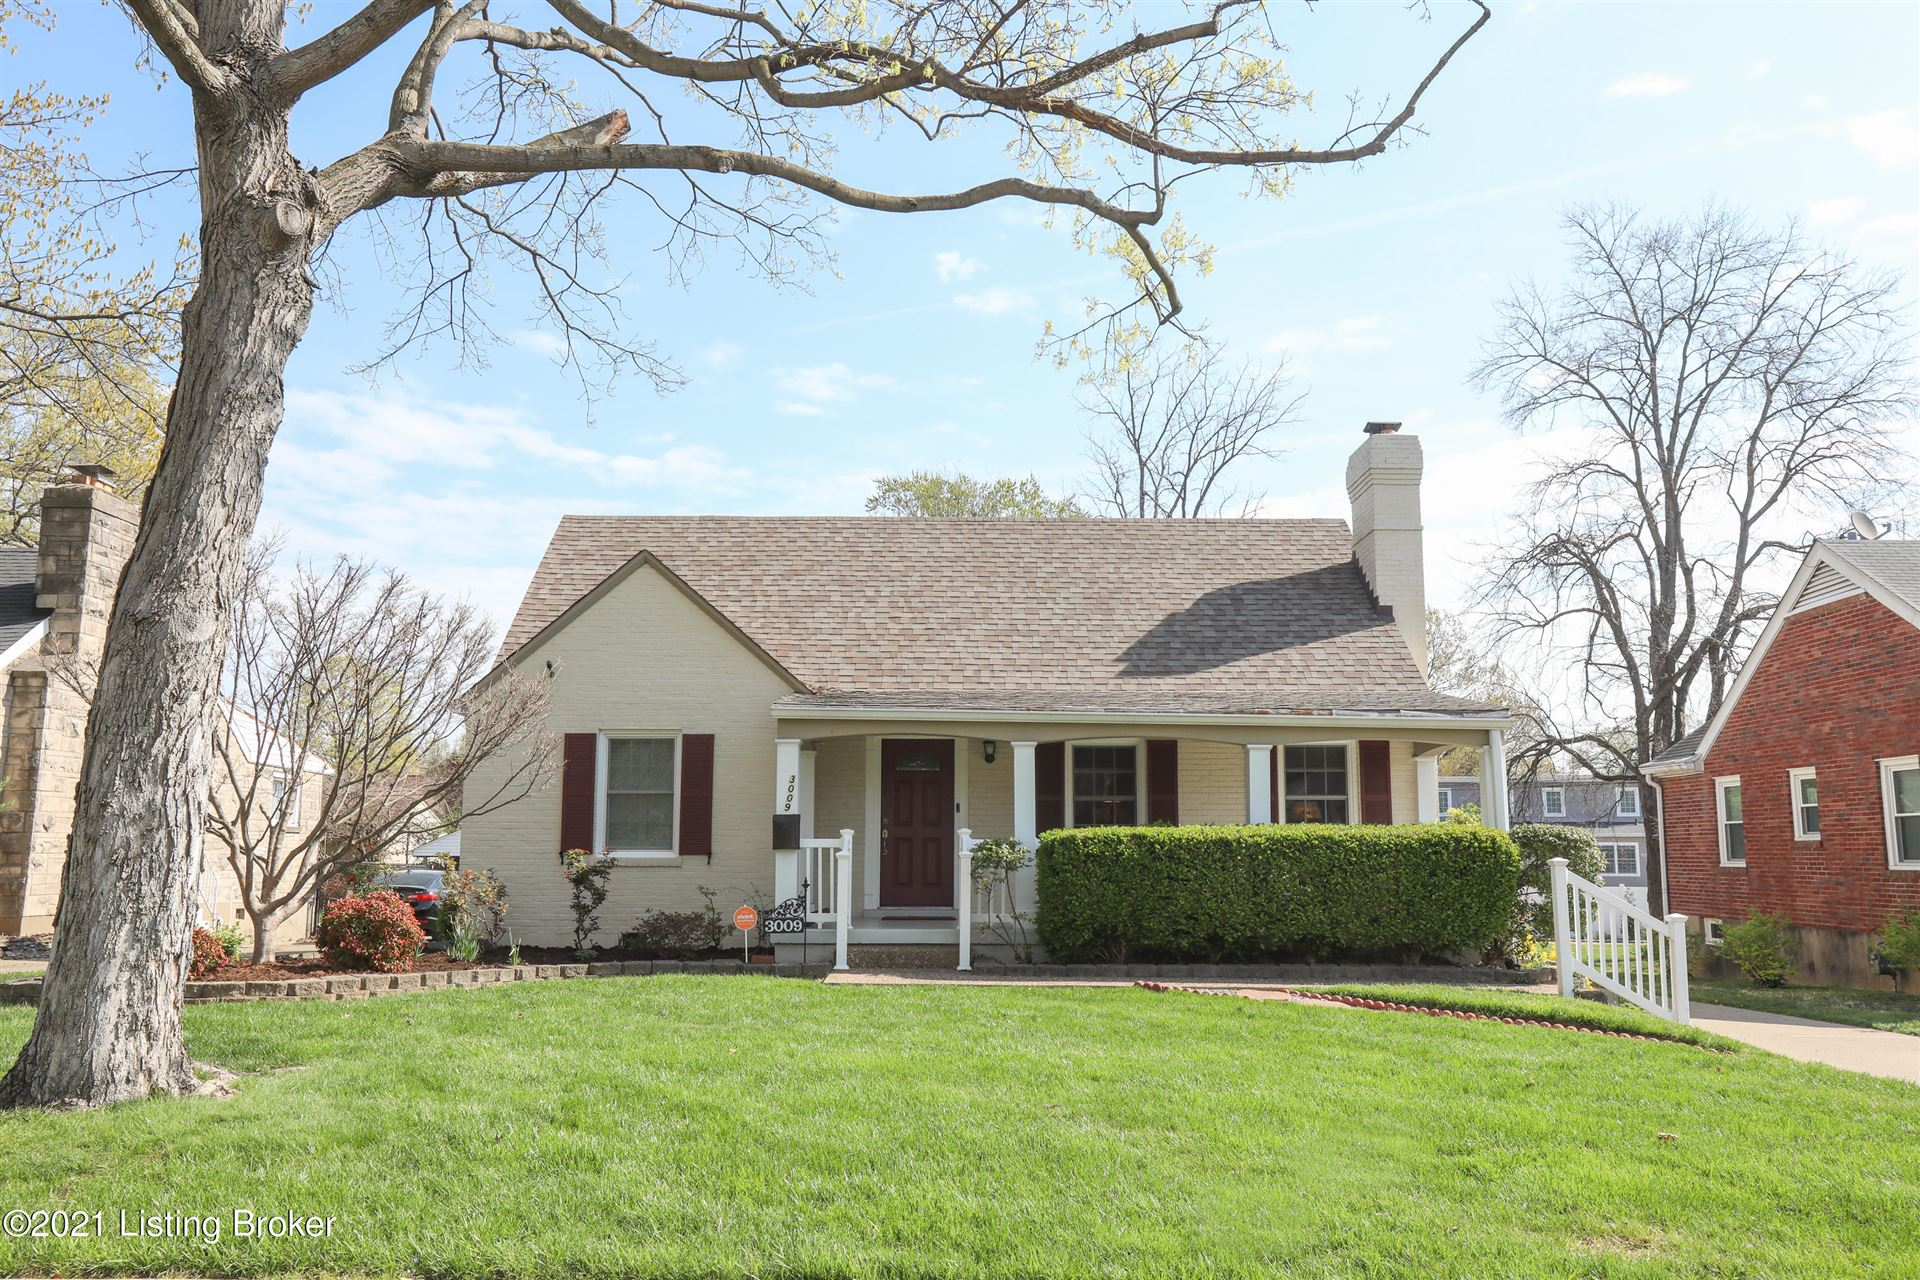 Photo for 3009 Lowell Ave, Louisville, KY 40205 (MLS # 1582778)